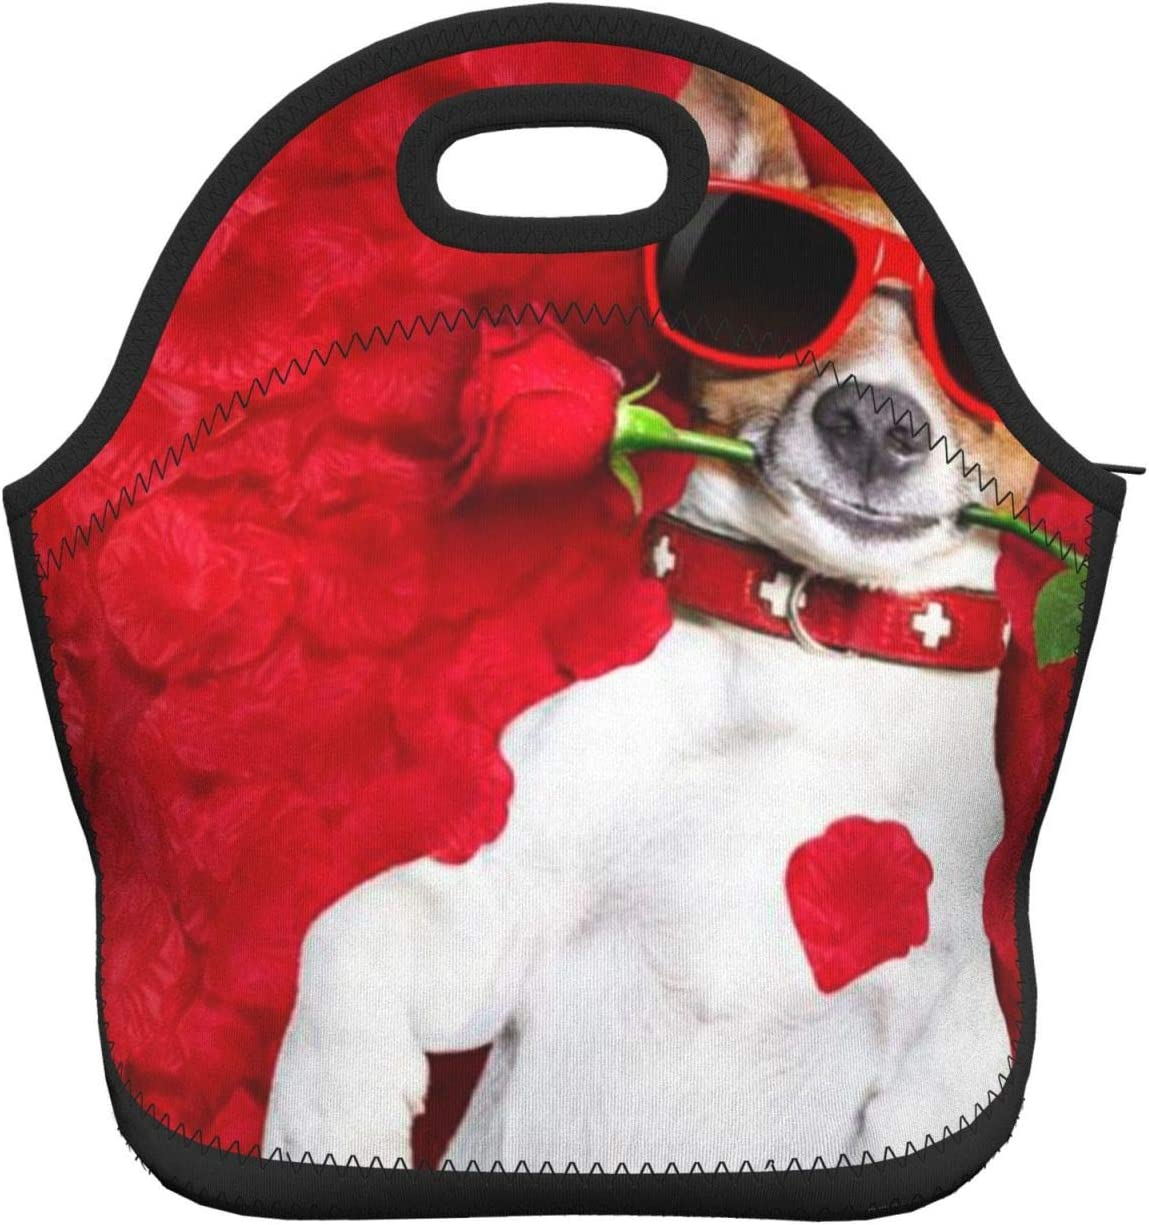 Auralto Insulated Neoprene Lunch Bag Tote Funly Red Rose Sunglasses Dog Handbag Lunchbox Food Container Gourmet Tote Cooler Warm Pouch for School Work Office